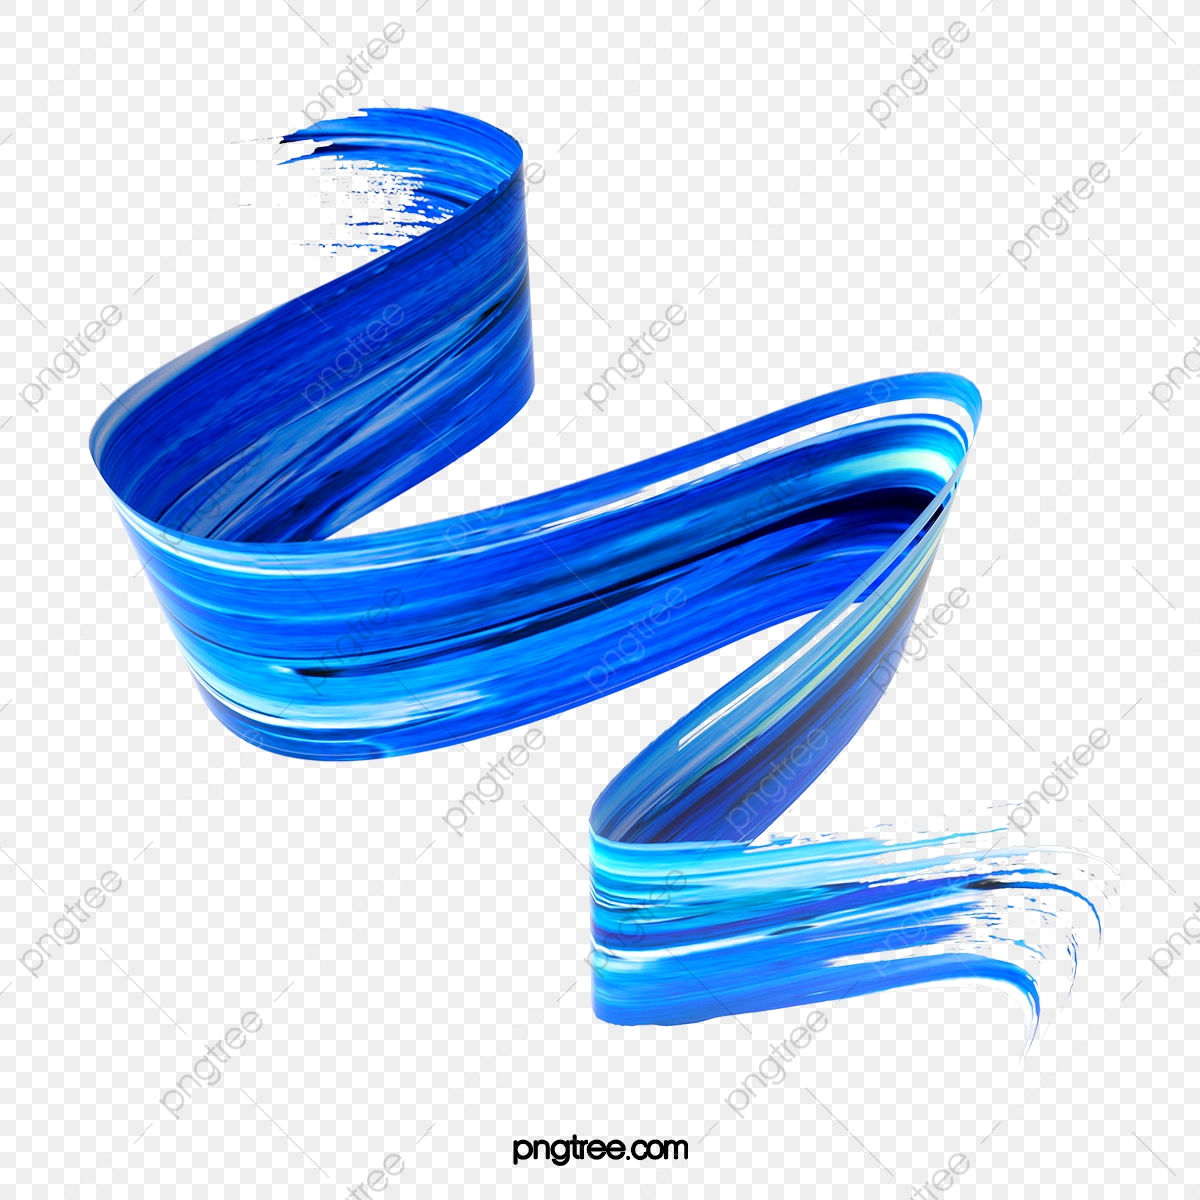 Blue Brush Png Images Vector And Psd Files Free Download On Pngtree